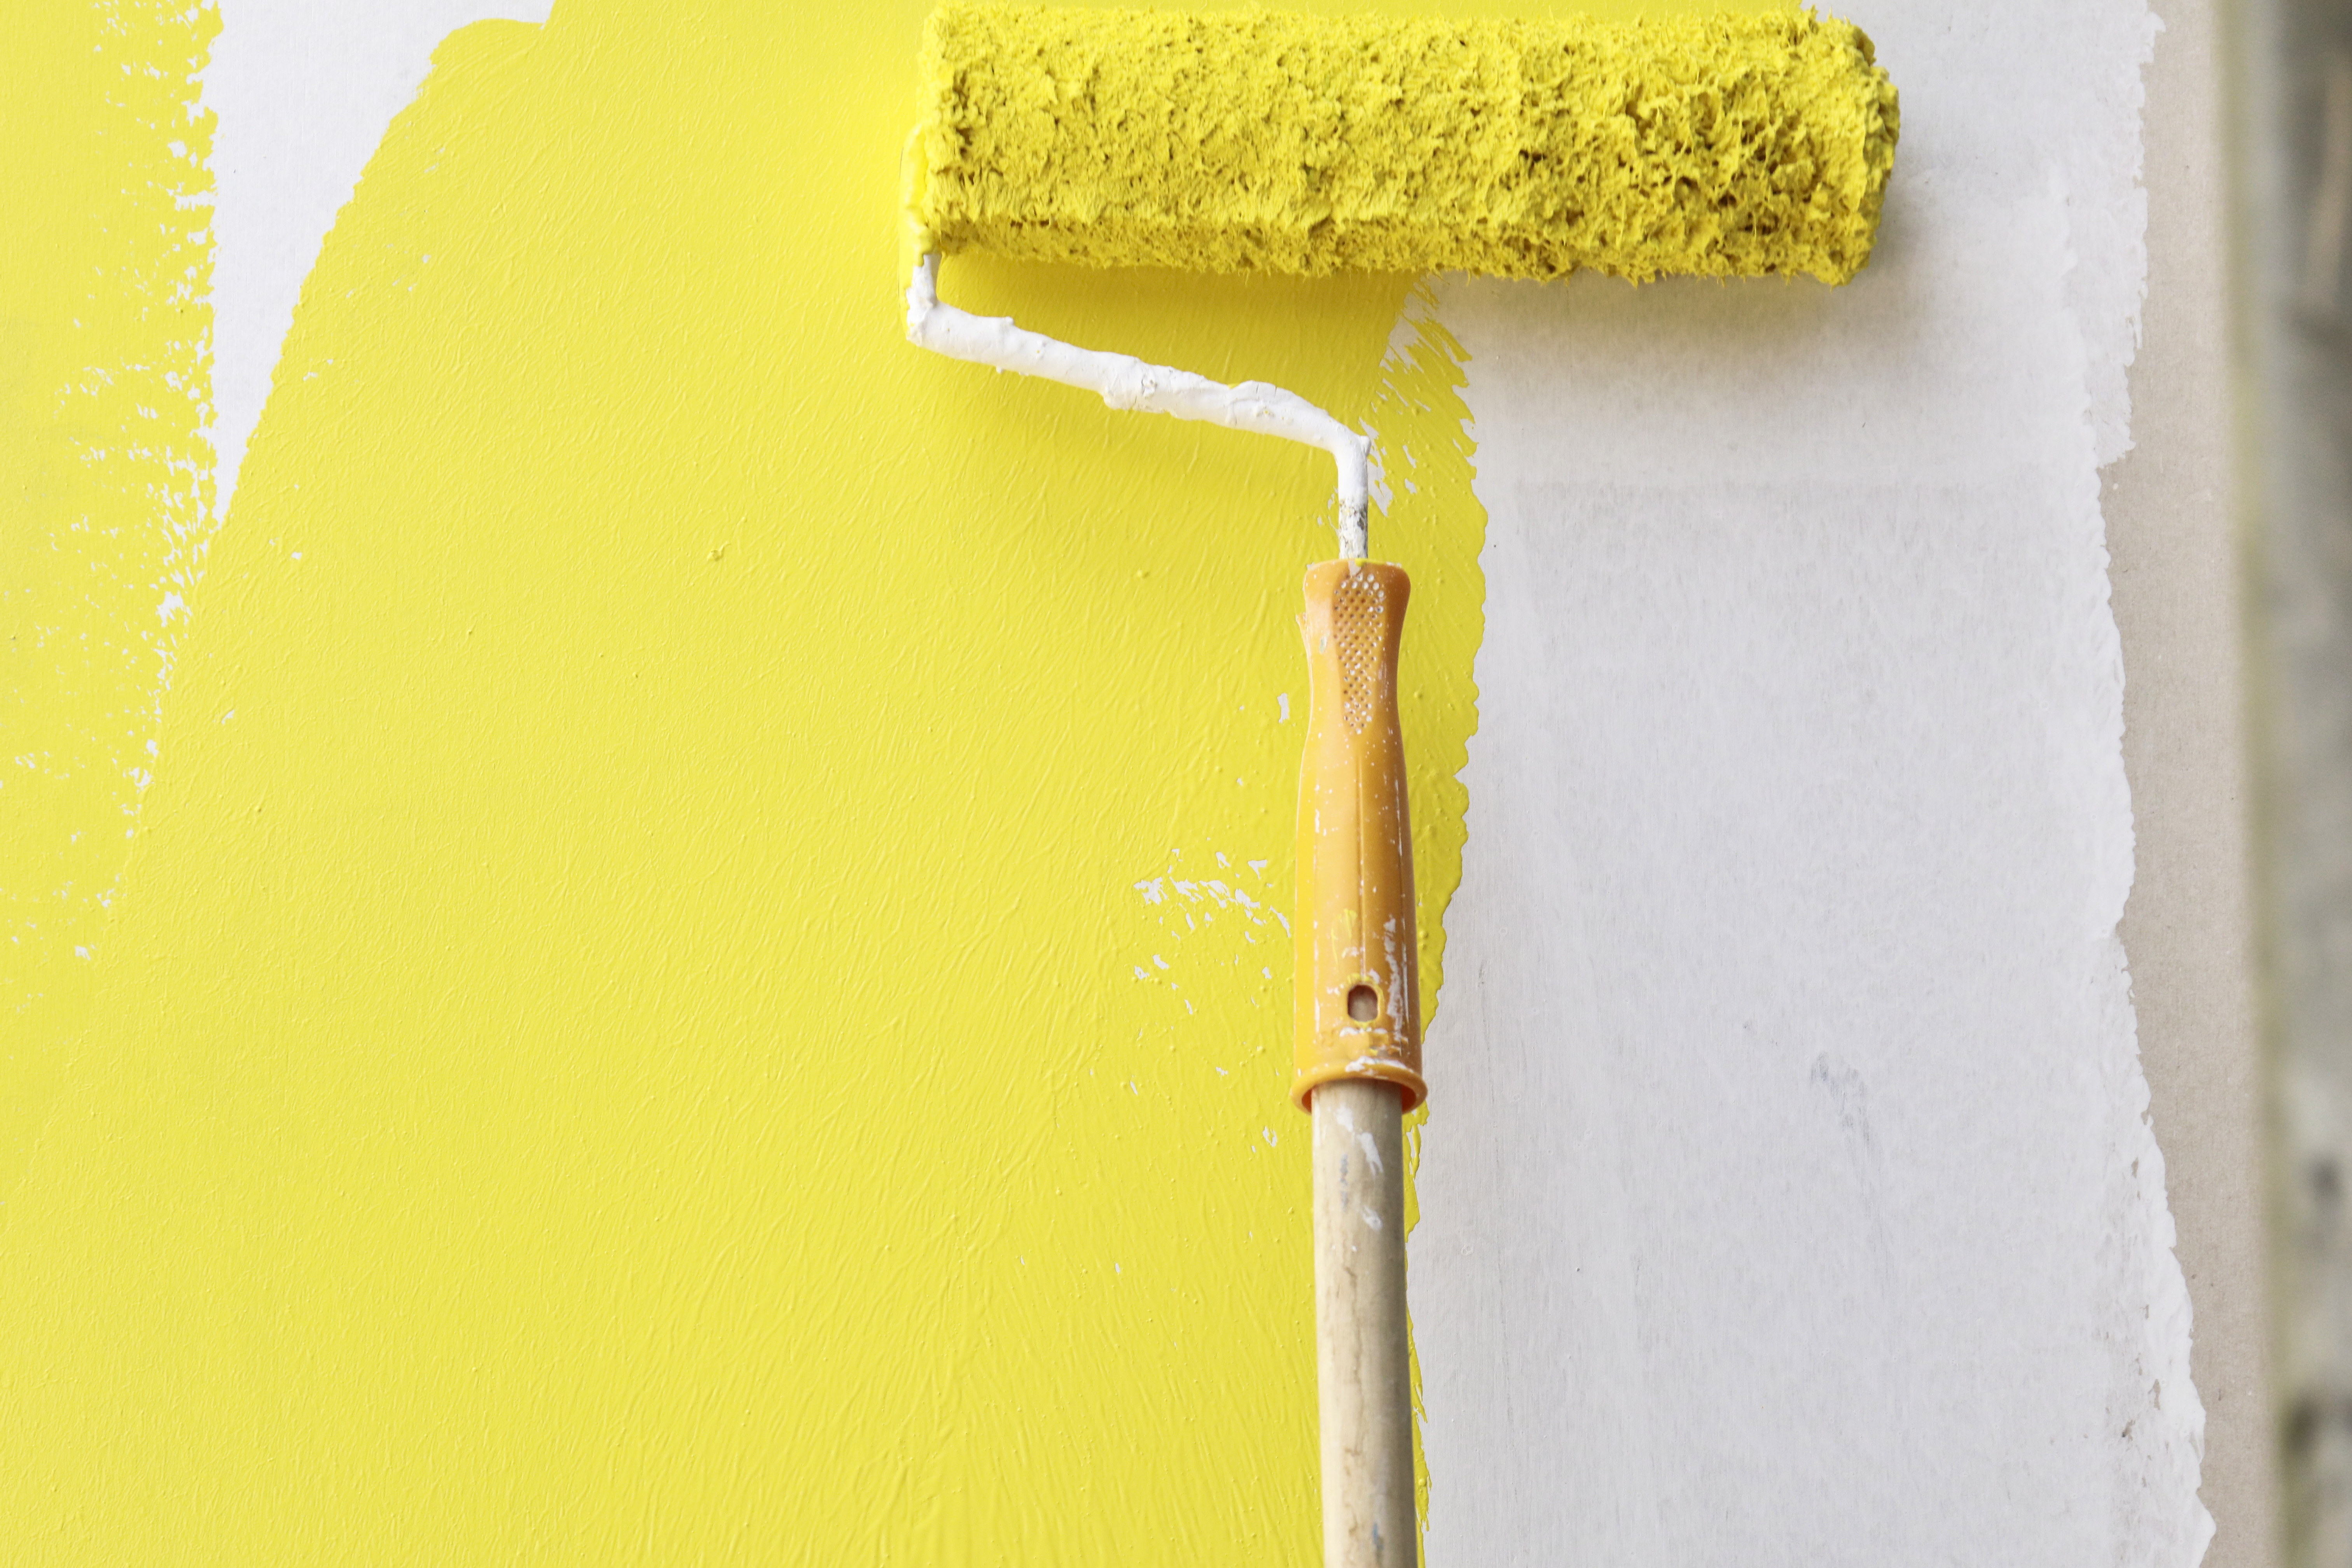 Painting with paintbrush yellow and white